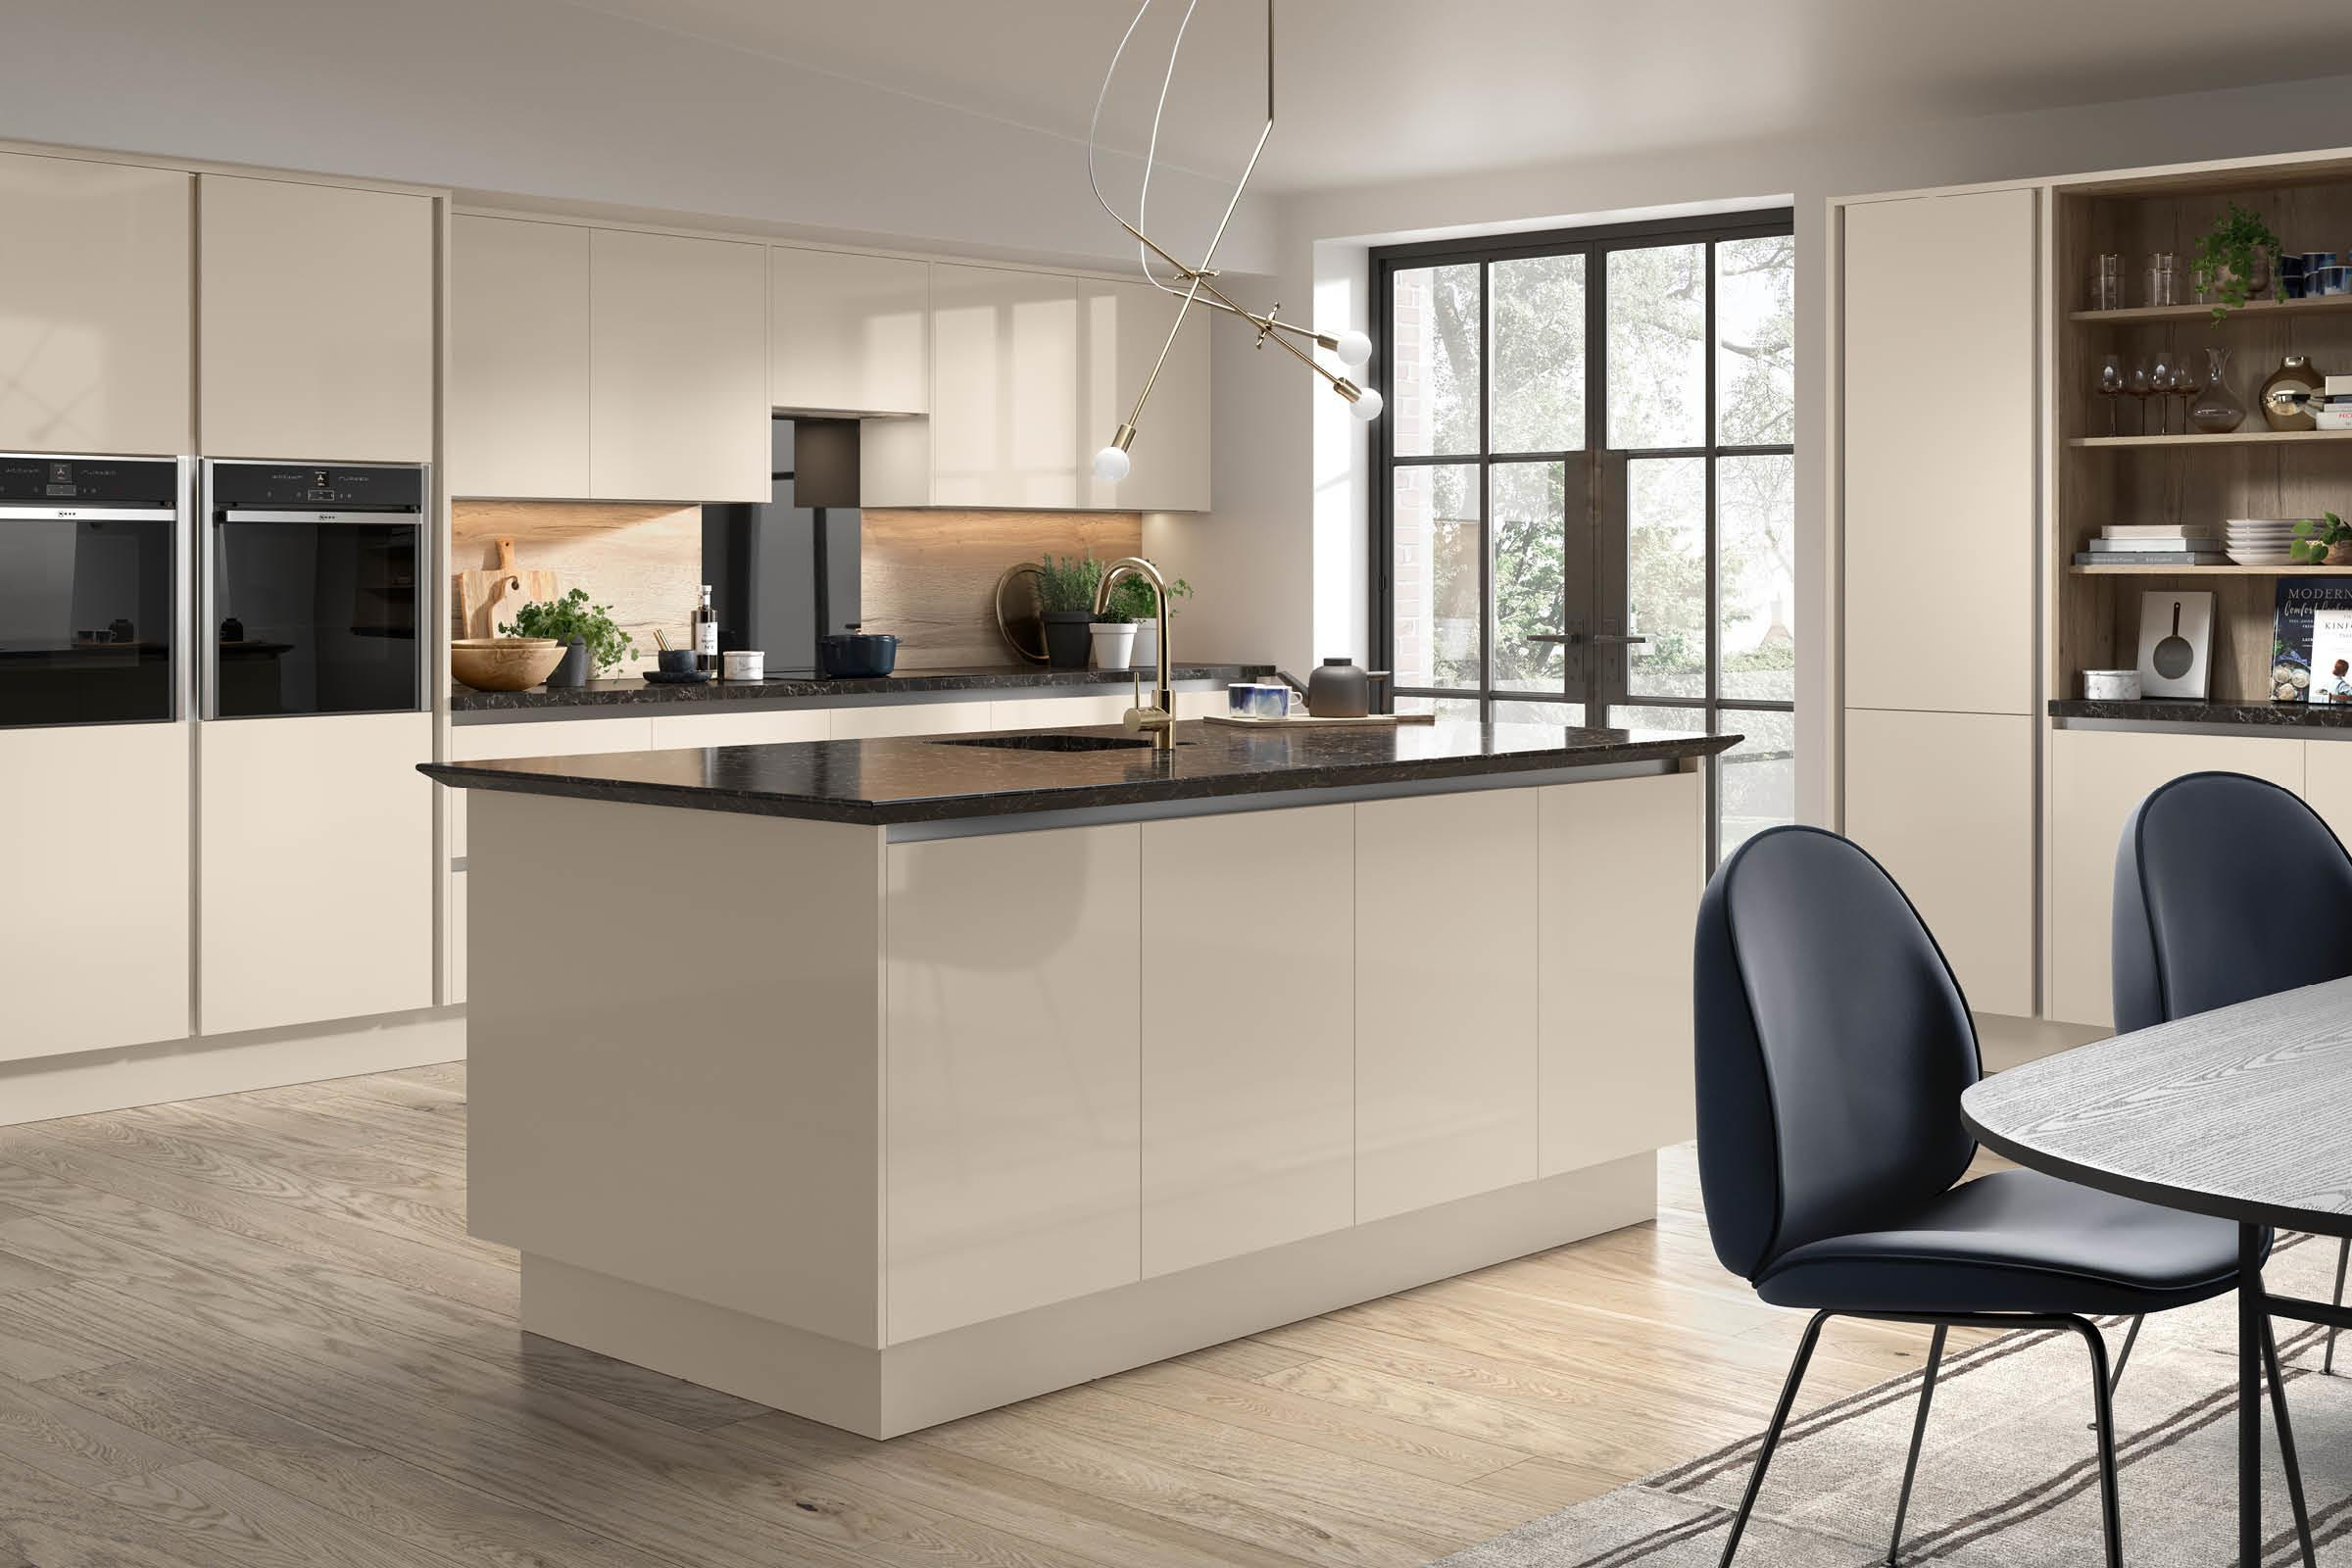 Firbeck supergloss cashmere Kitchen